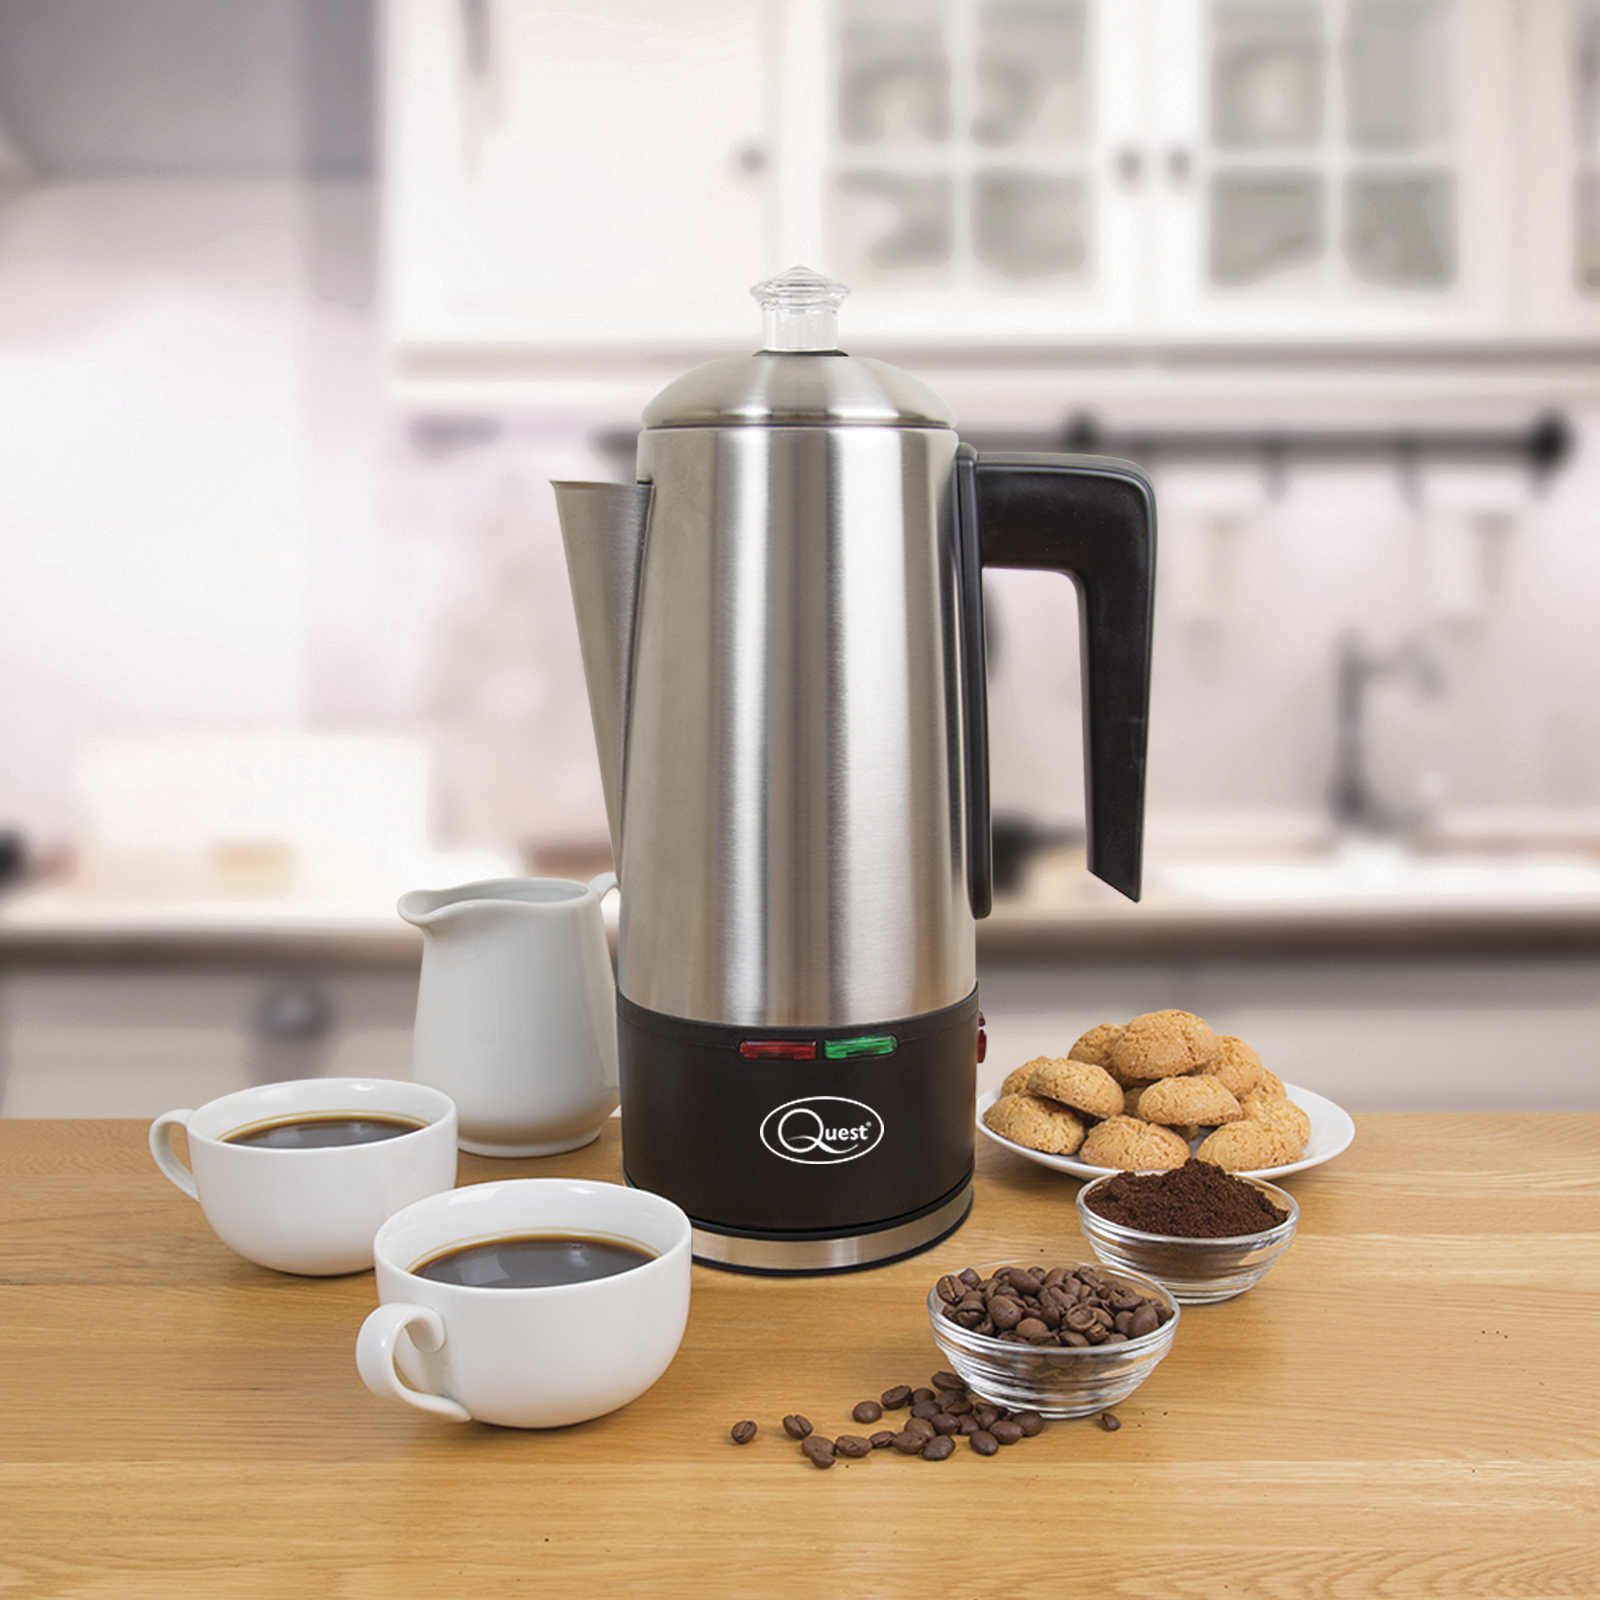 1.5L Electric Coffee Percolator - Create perfect fresh coffee, enjoy anytime using the keep warm function.